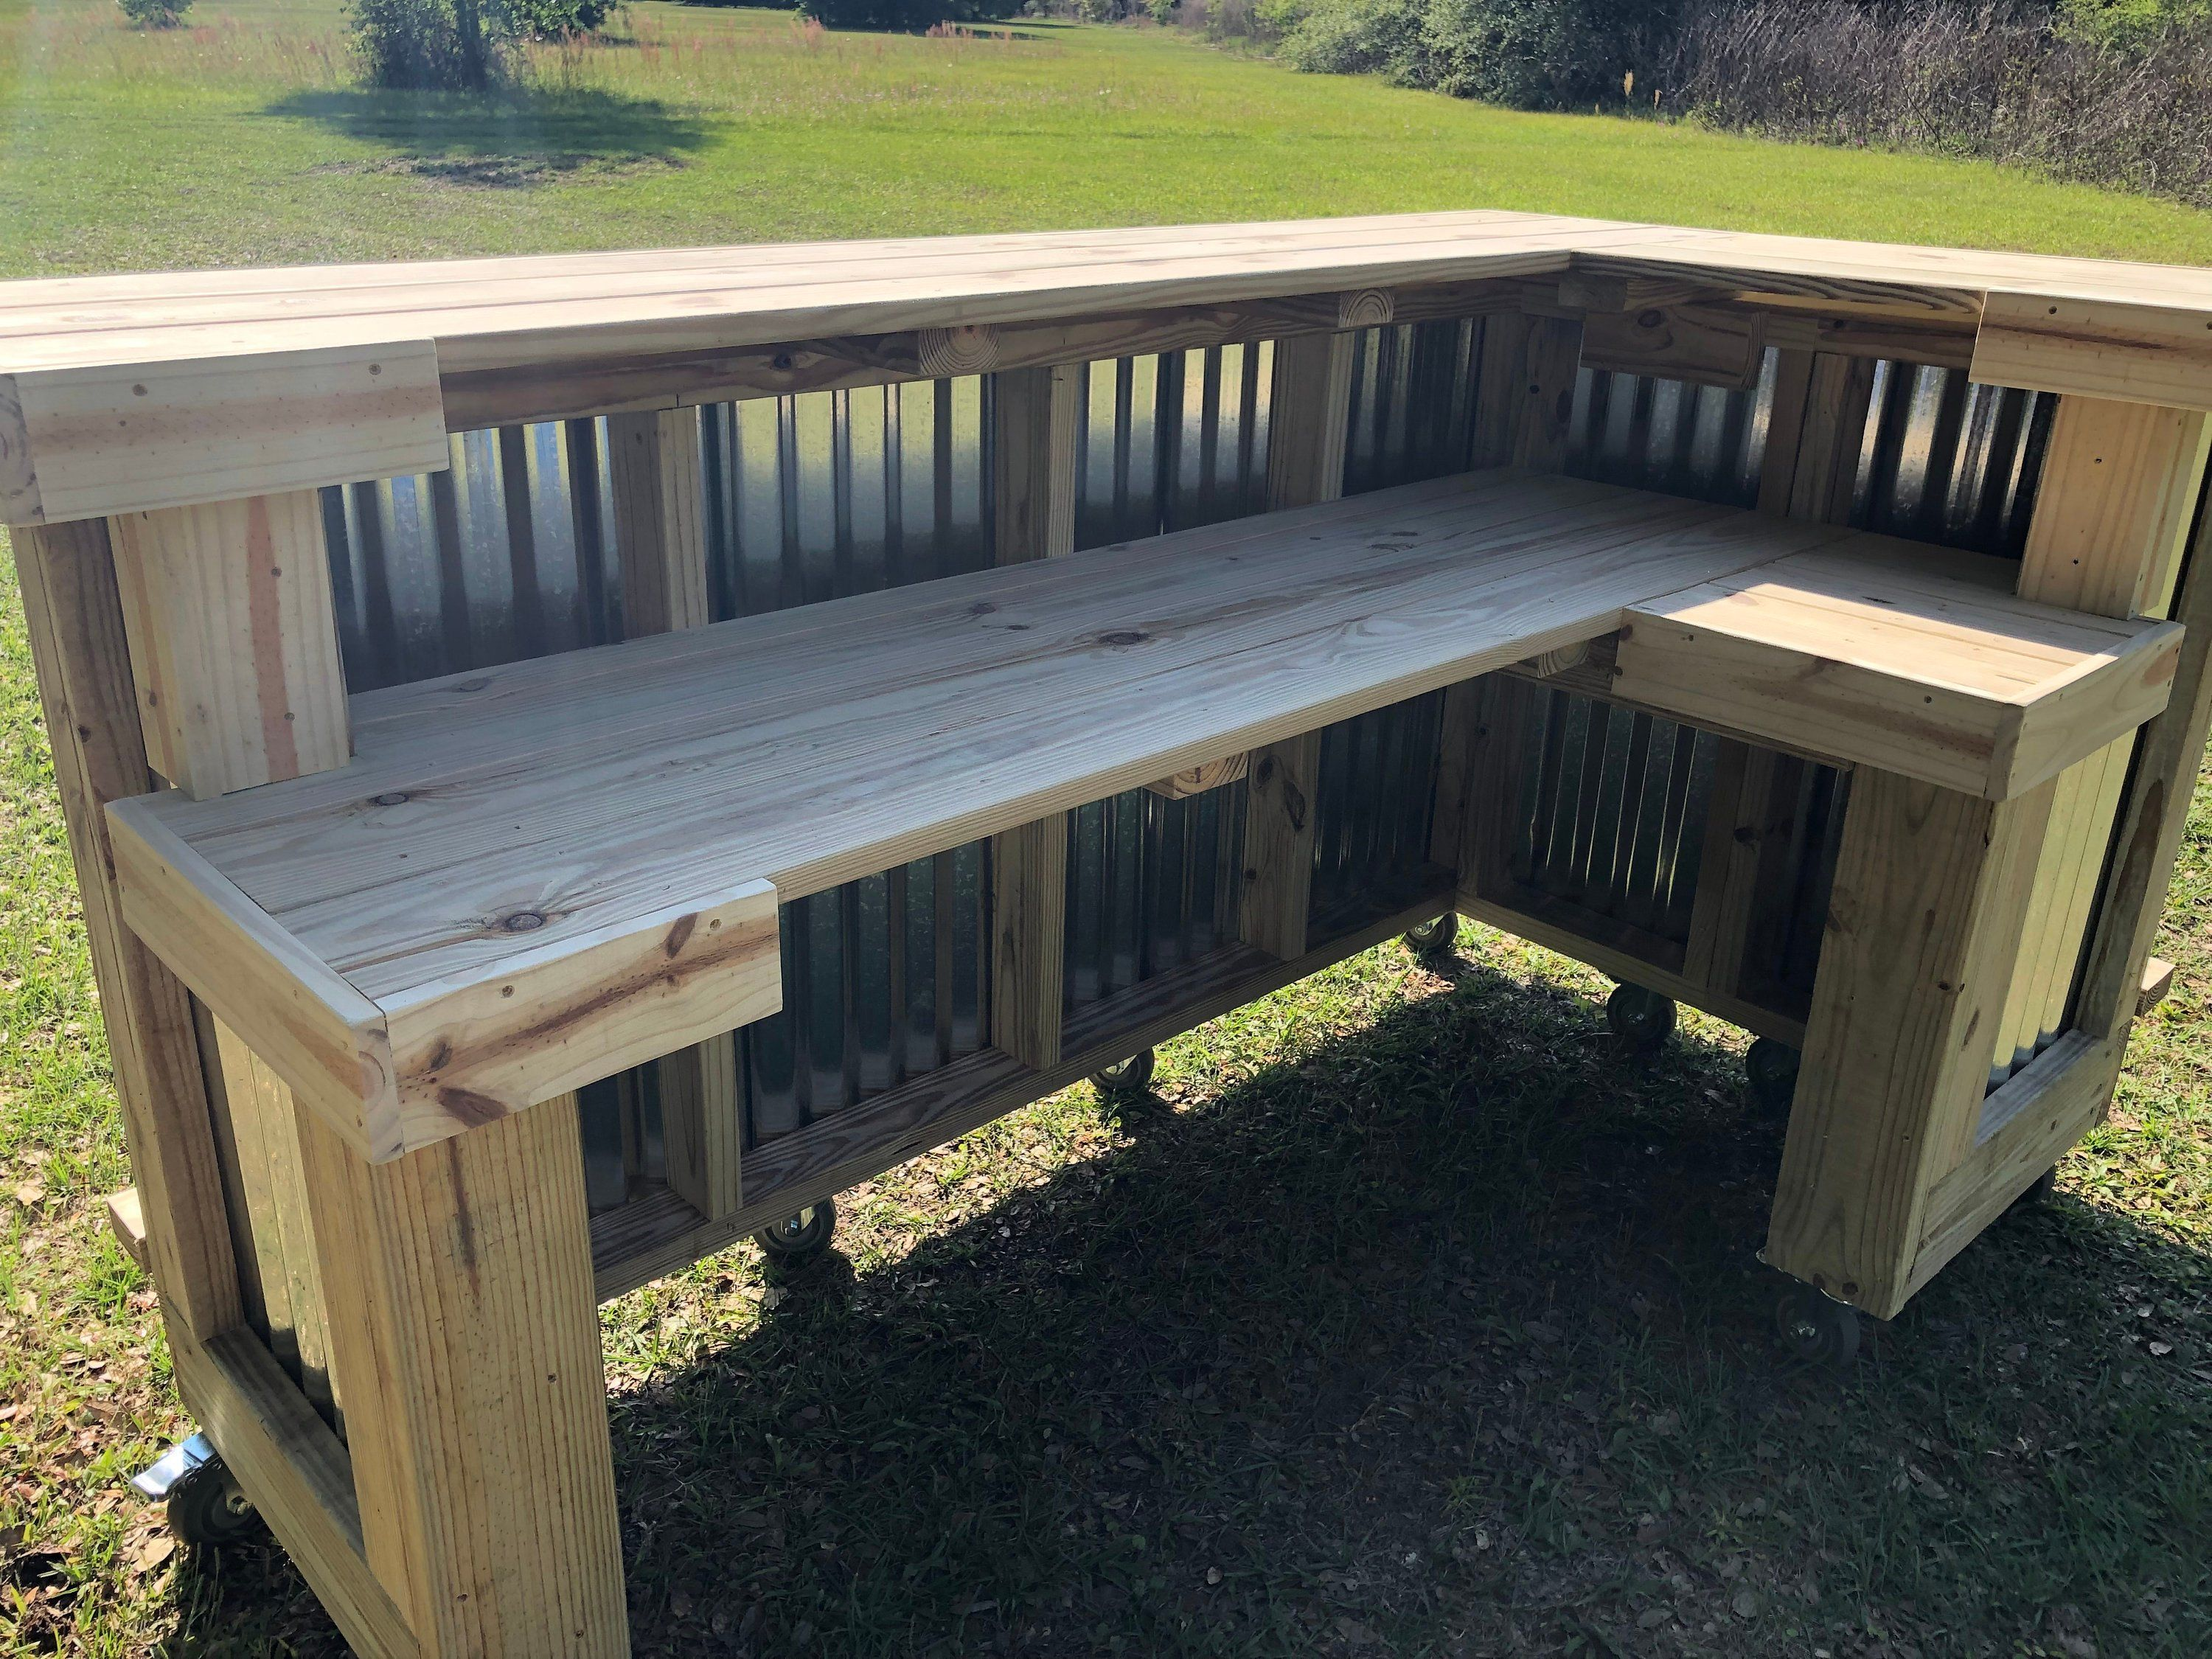 The Metal Kitchen 7 X 4 5 2 Level L Shaped Rustic Style Real Pressure Treated Wood Corrugated Metal Outdoor Or Indoor Bar Outdoor Patio Bar Rustic Outdoor Kitchens Patio Bar